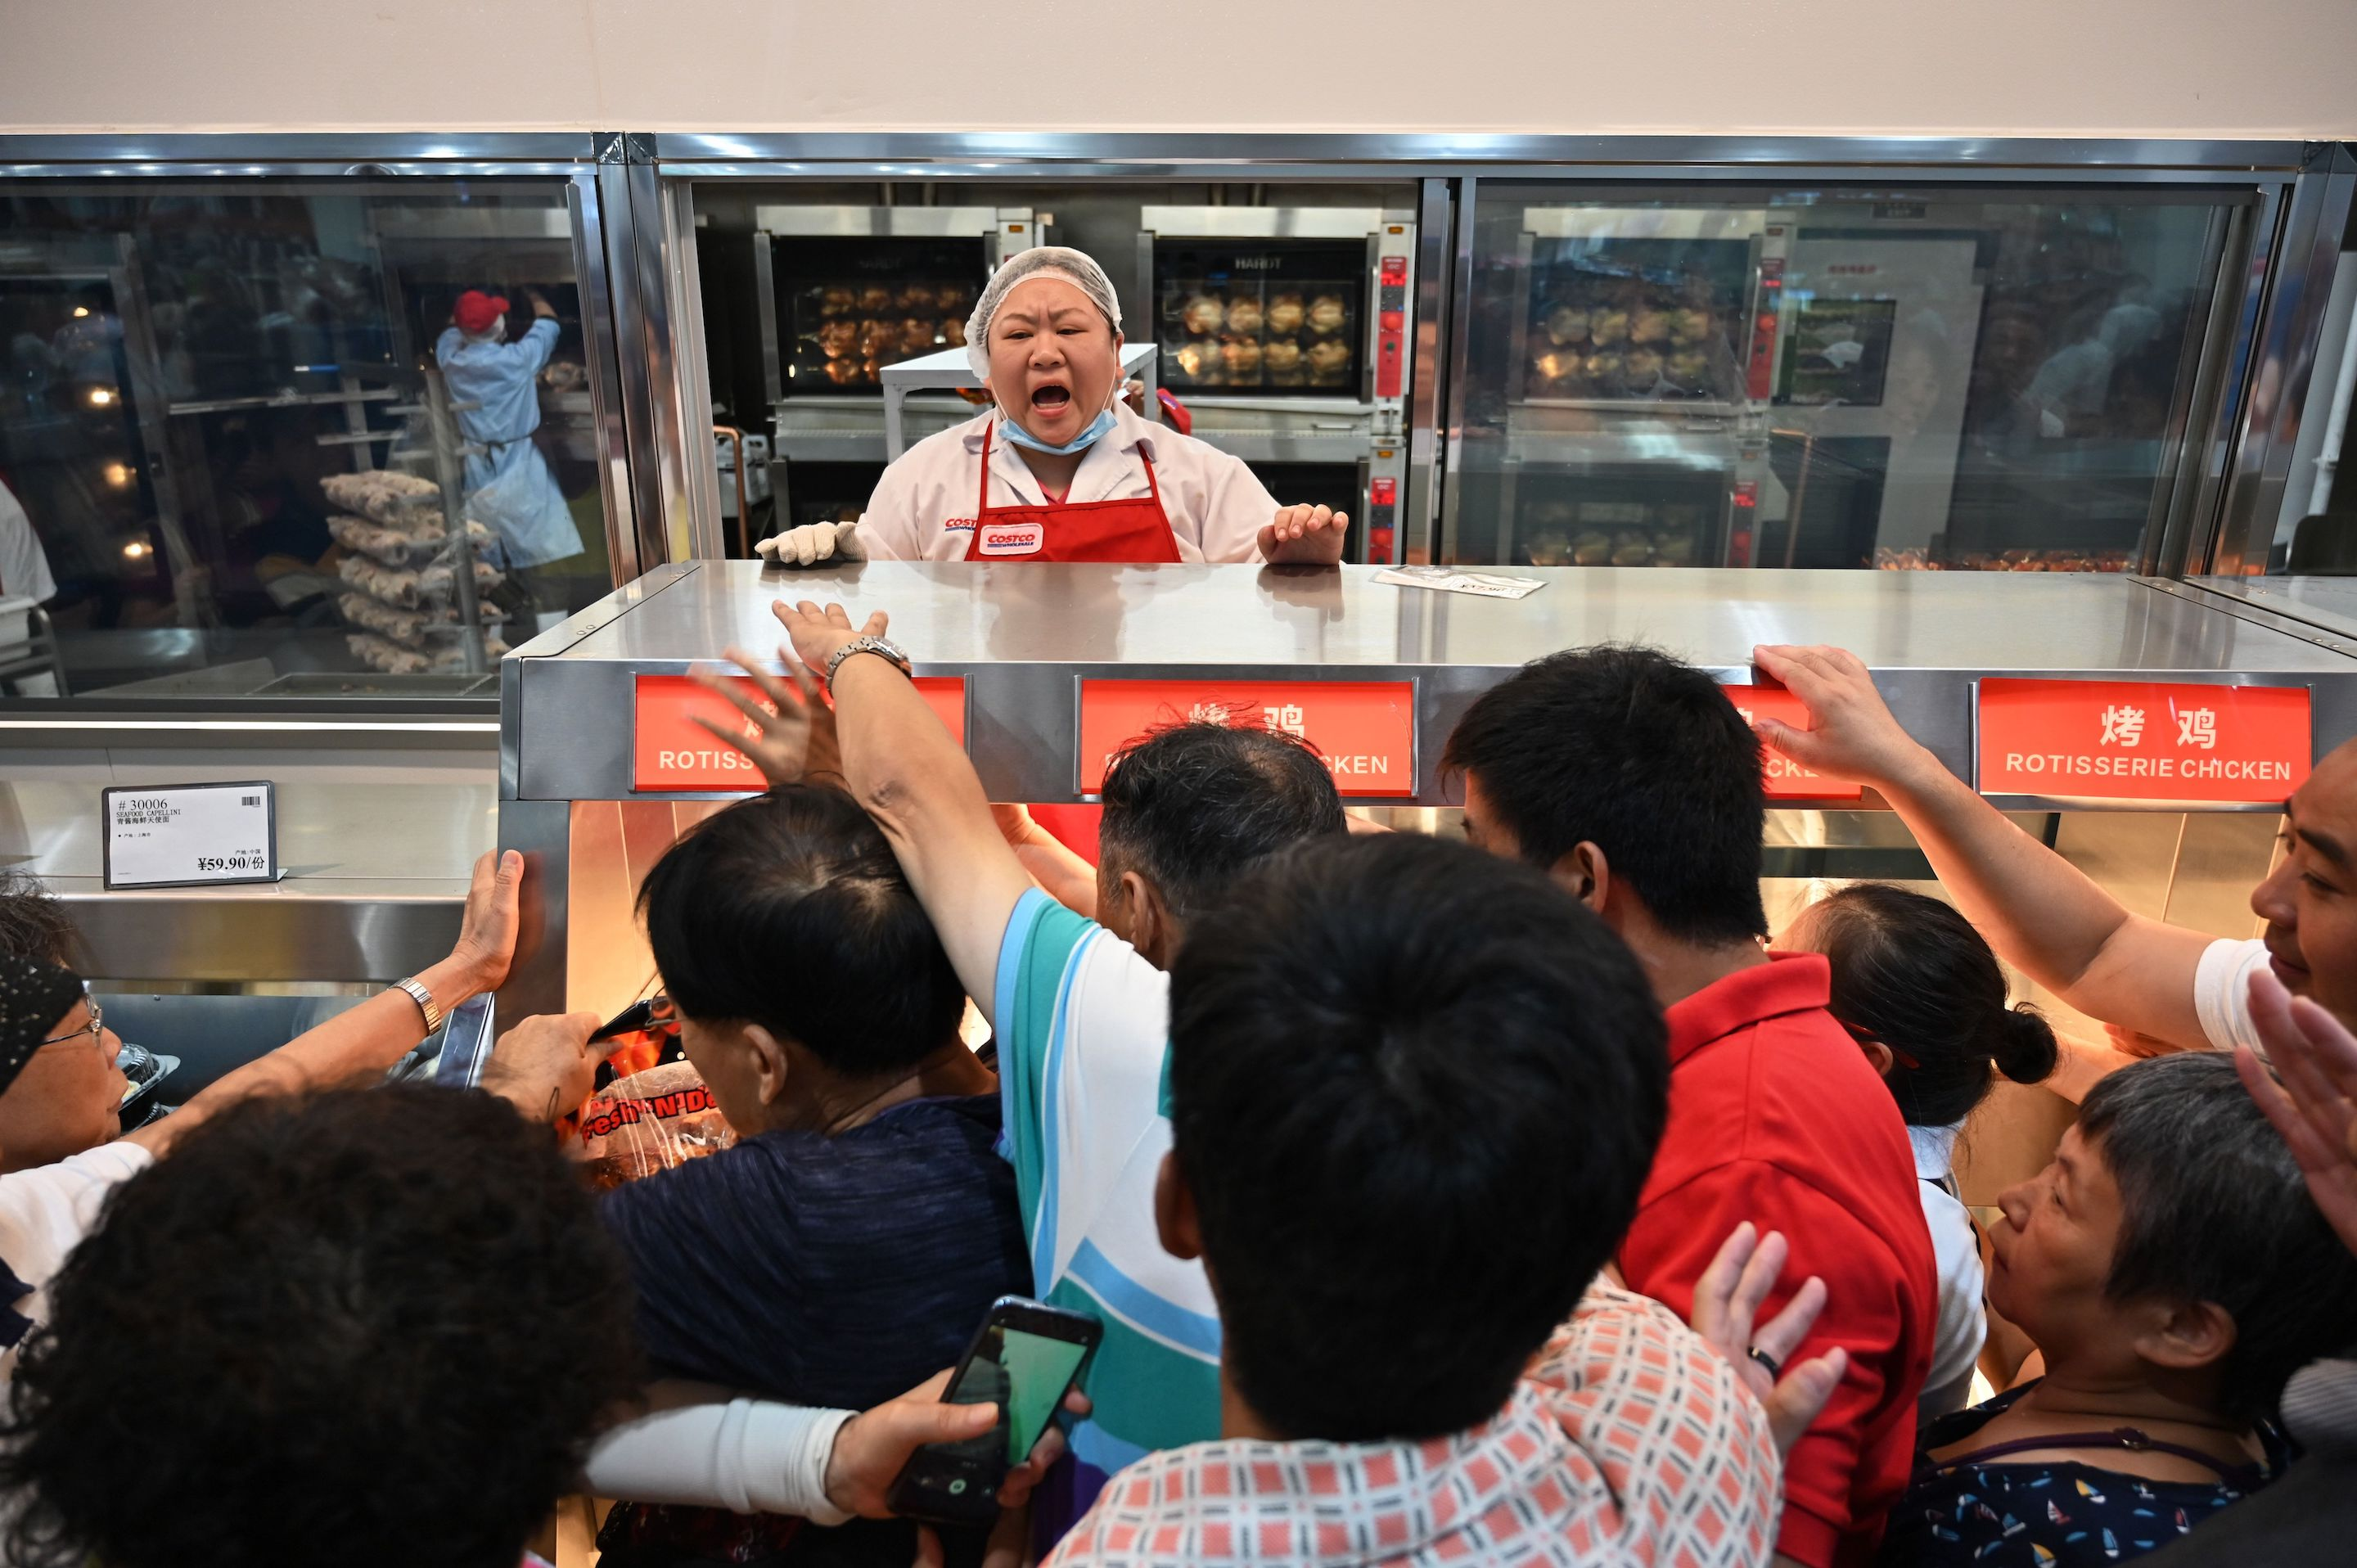 Shanghai customers clamor at the roast chicken counter at Costco's first store in China, which debuted today. Crowds surged through the store.